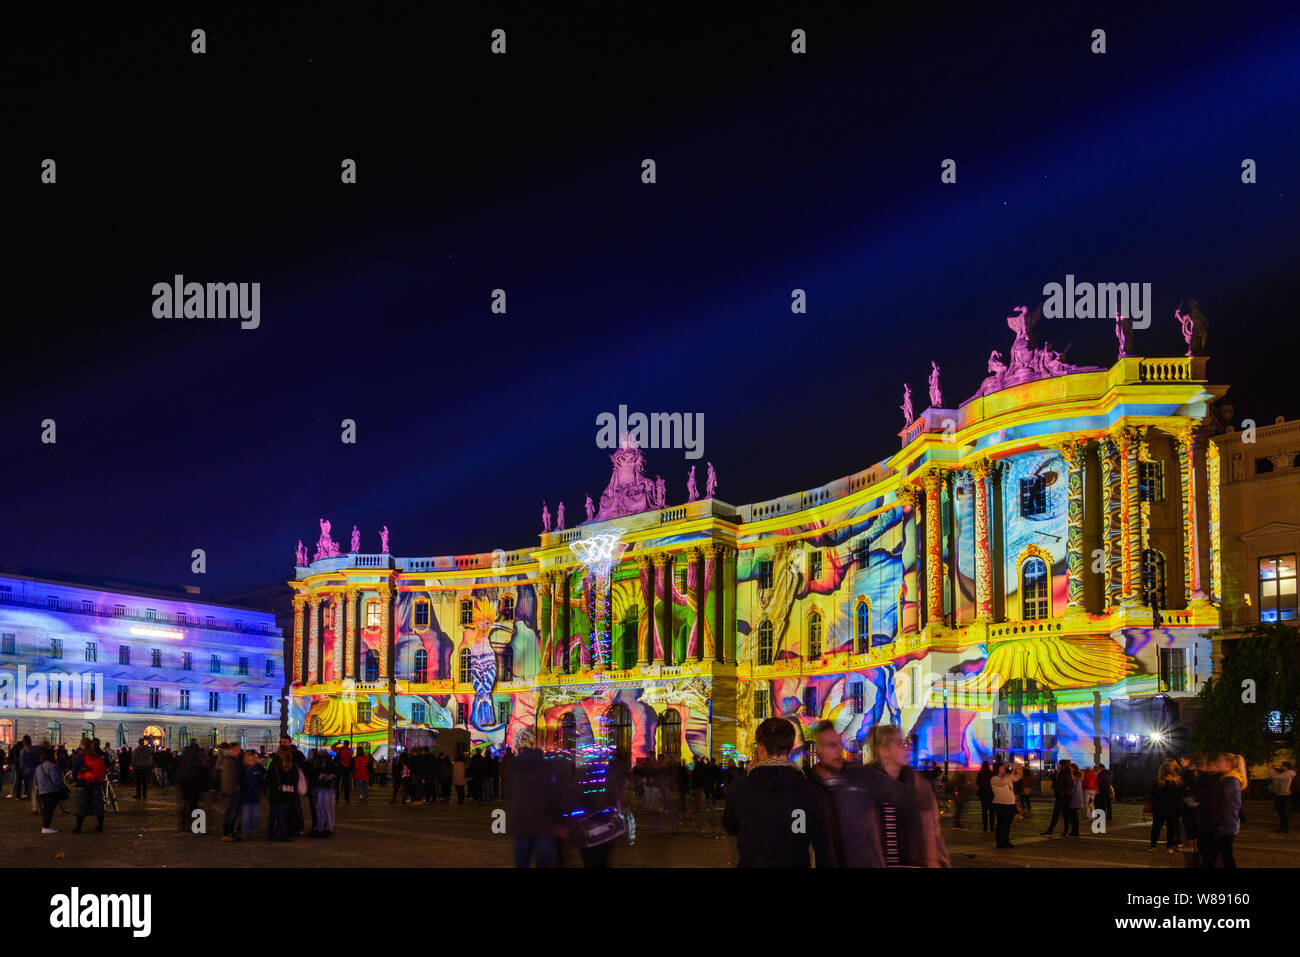 People Enjoy Event Festival Of Lights Berlin Leuchtet The Projection Mapping Lighting Art On Opera Cathedral Buildings Around Bebelplatz At Night Stock Photo Alamy